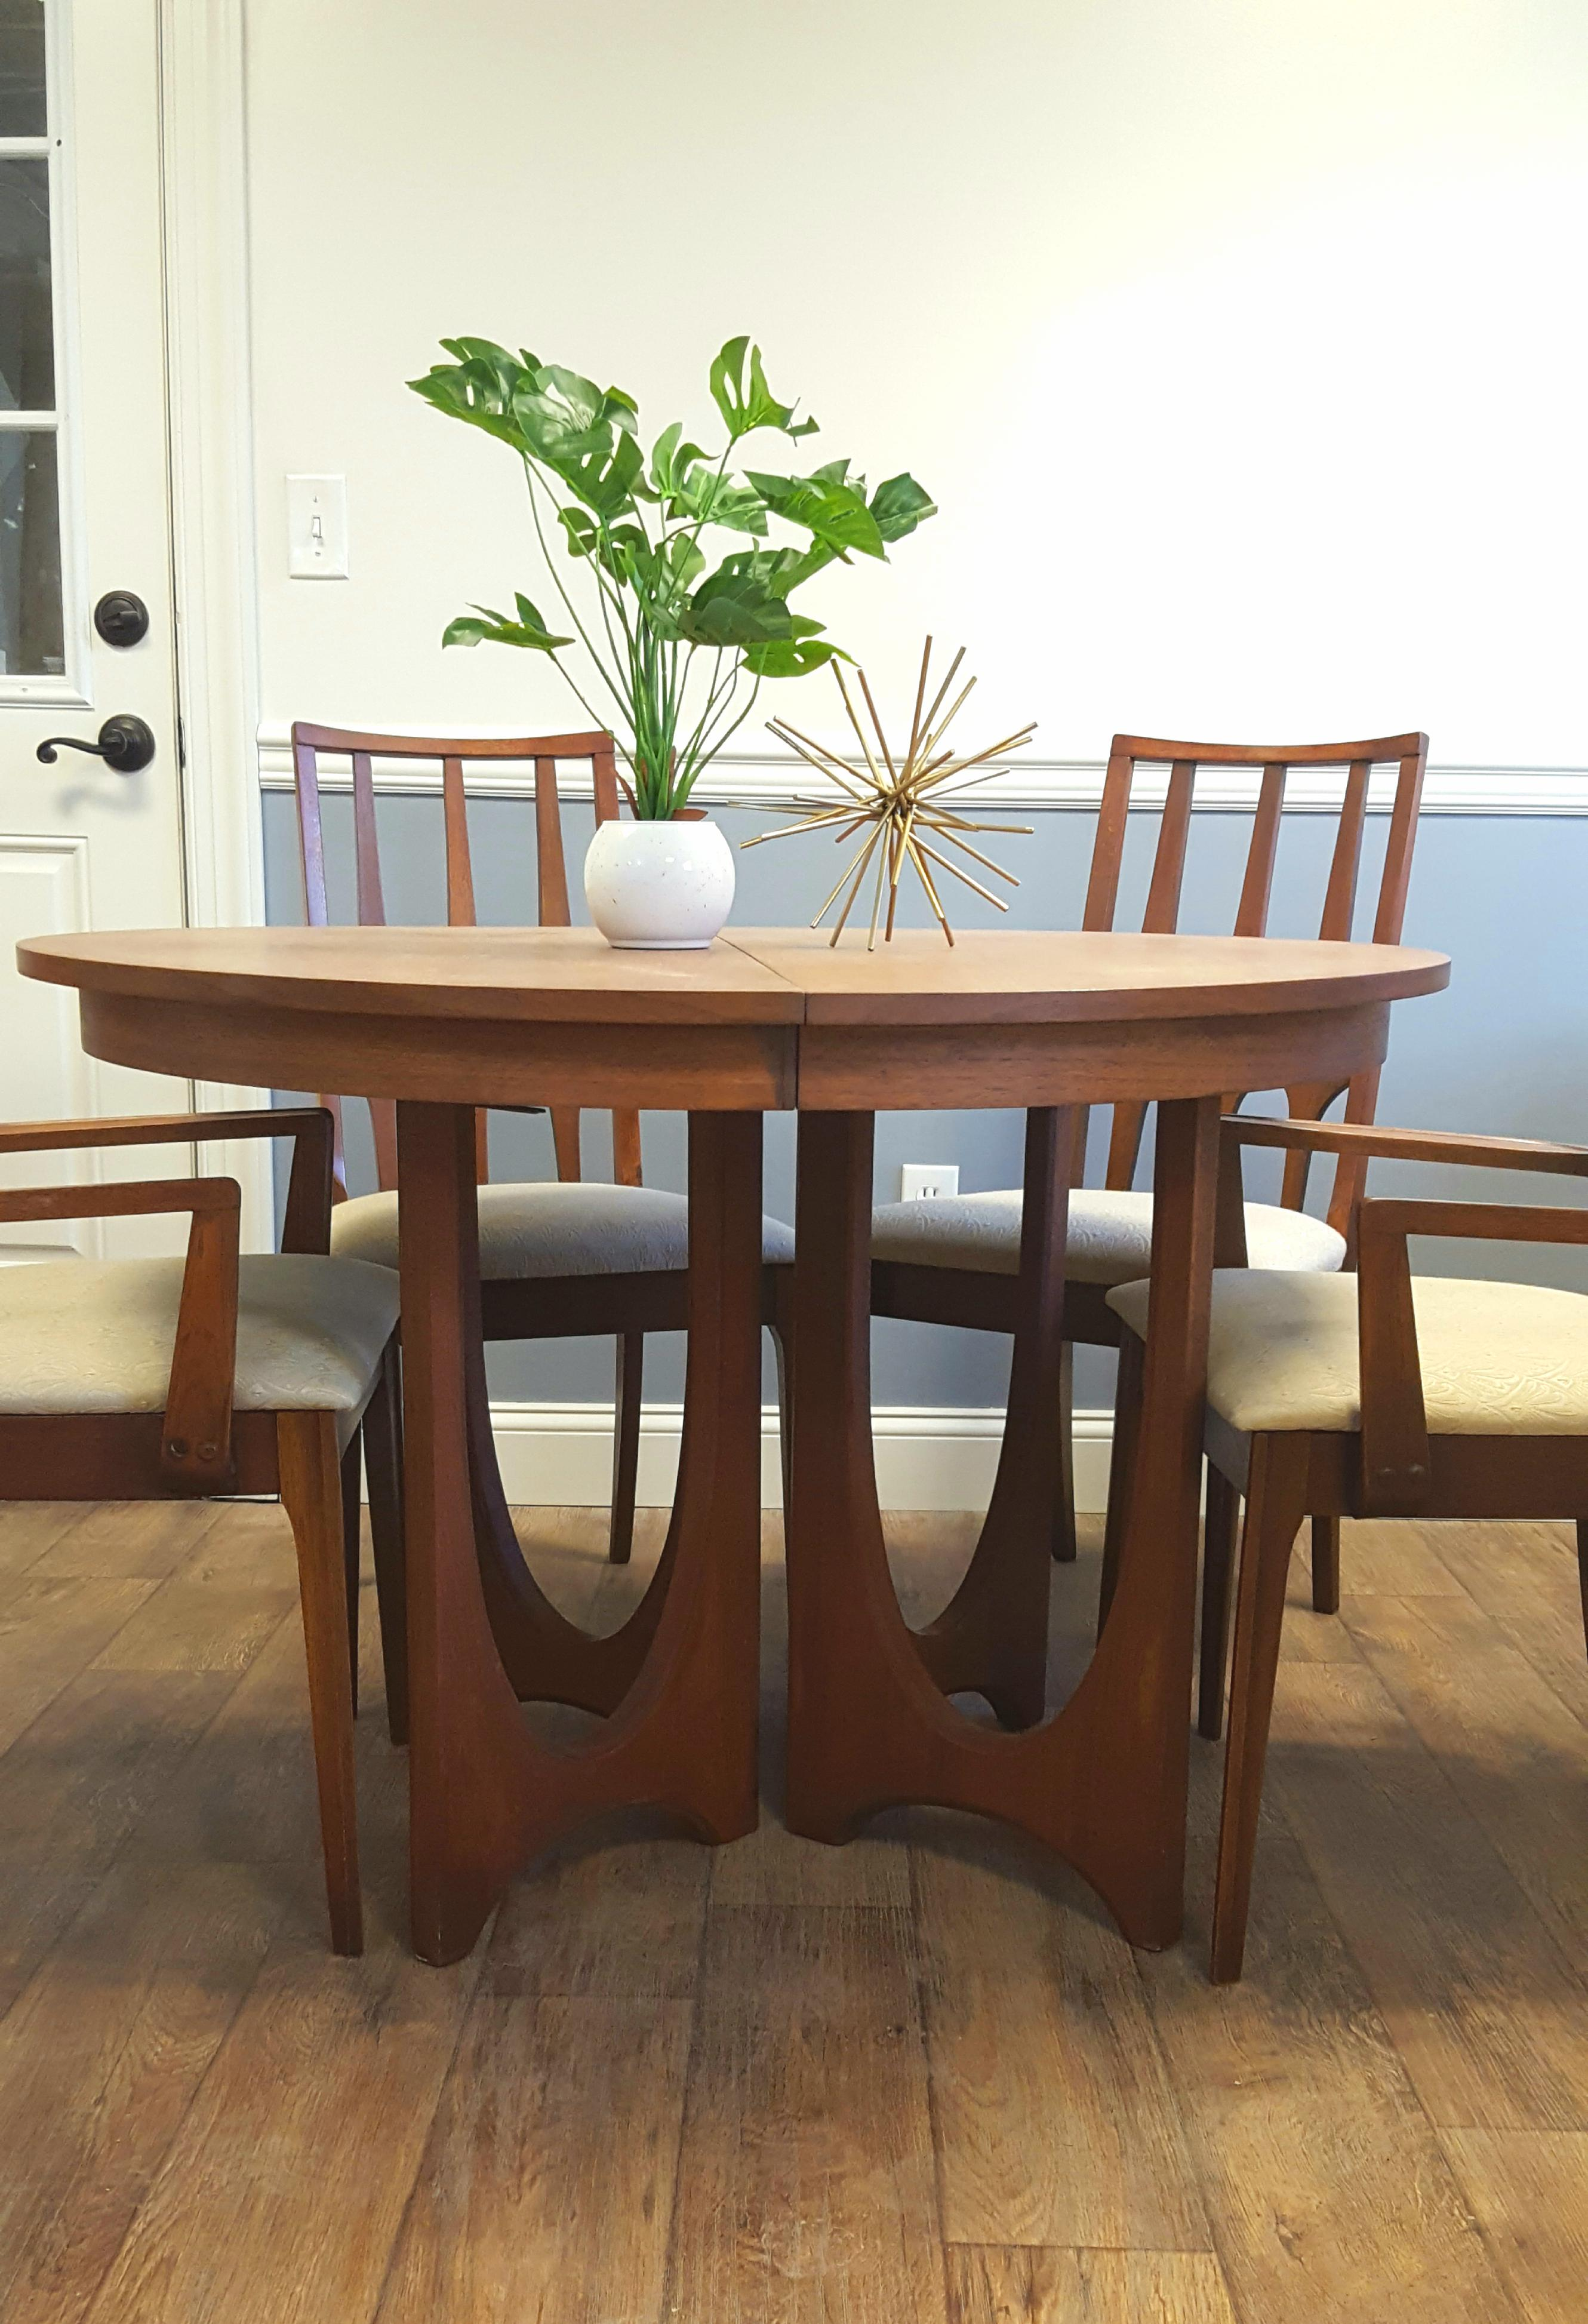 Broyhill Broyhill Brasilia Dining Room Set For Sale   Image 4 Of 9